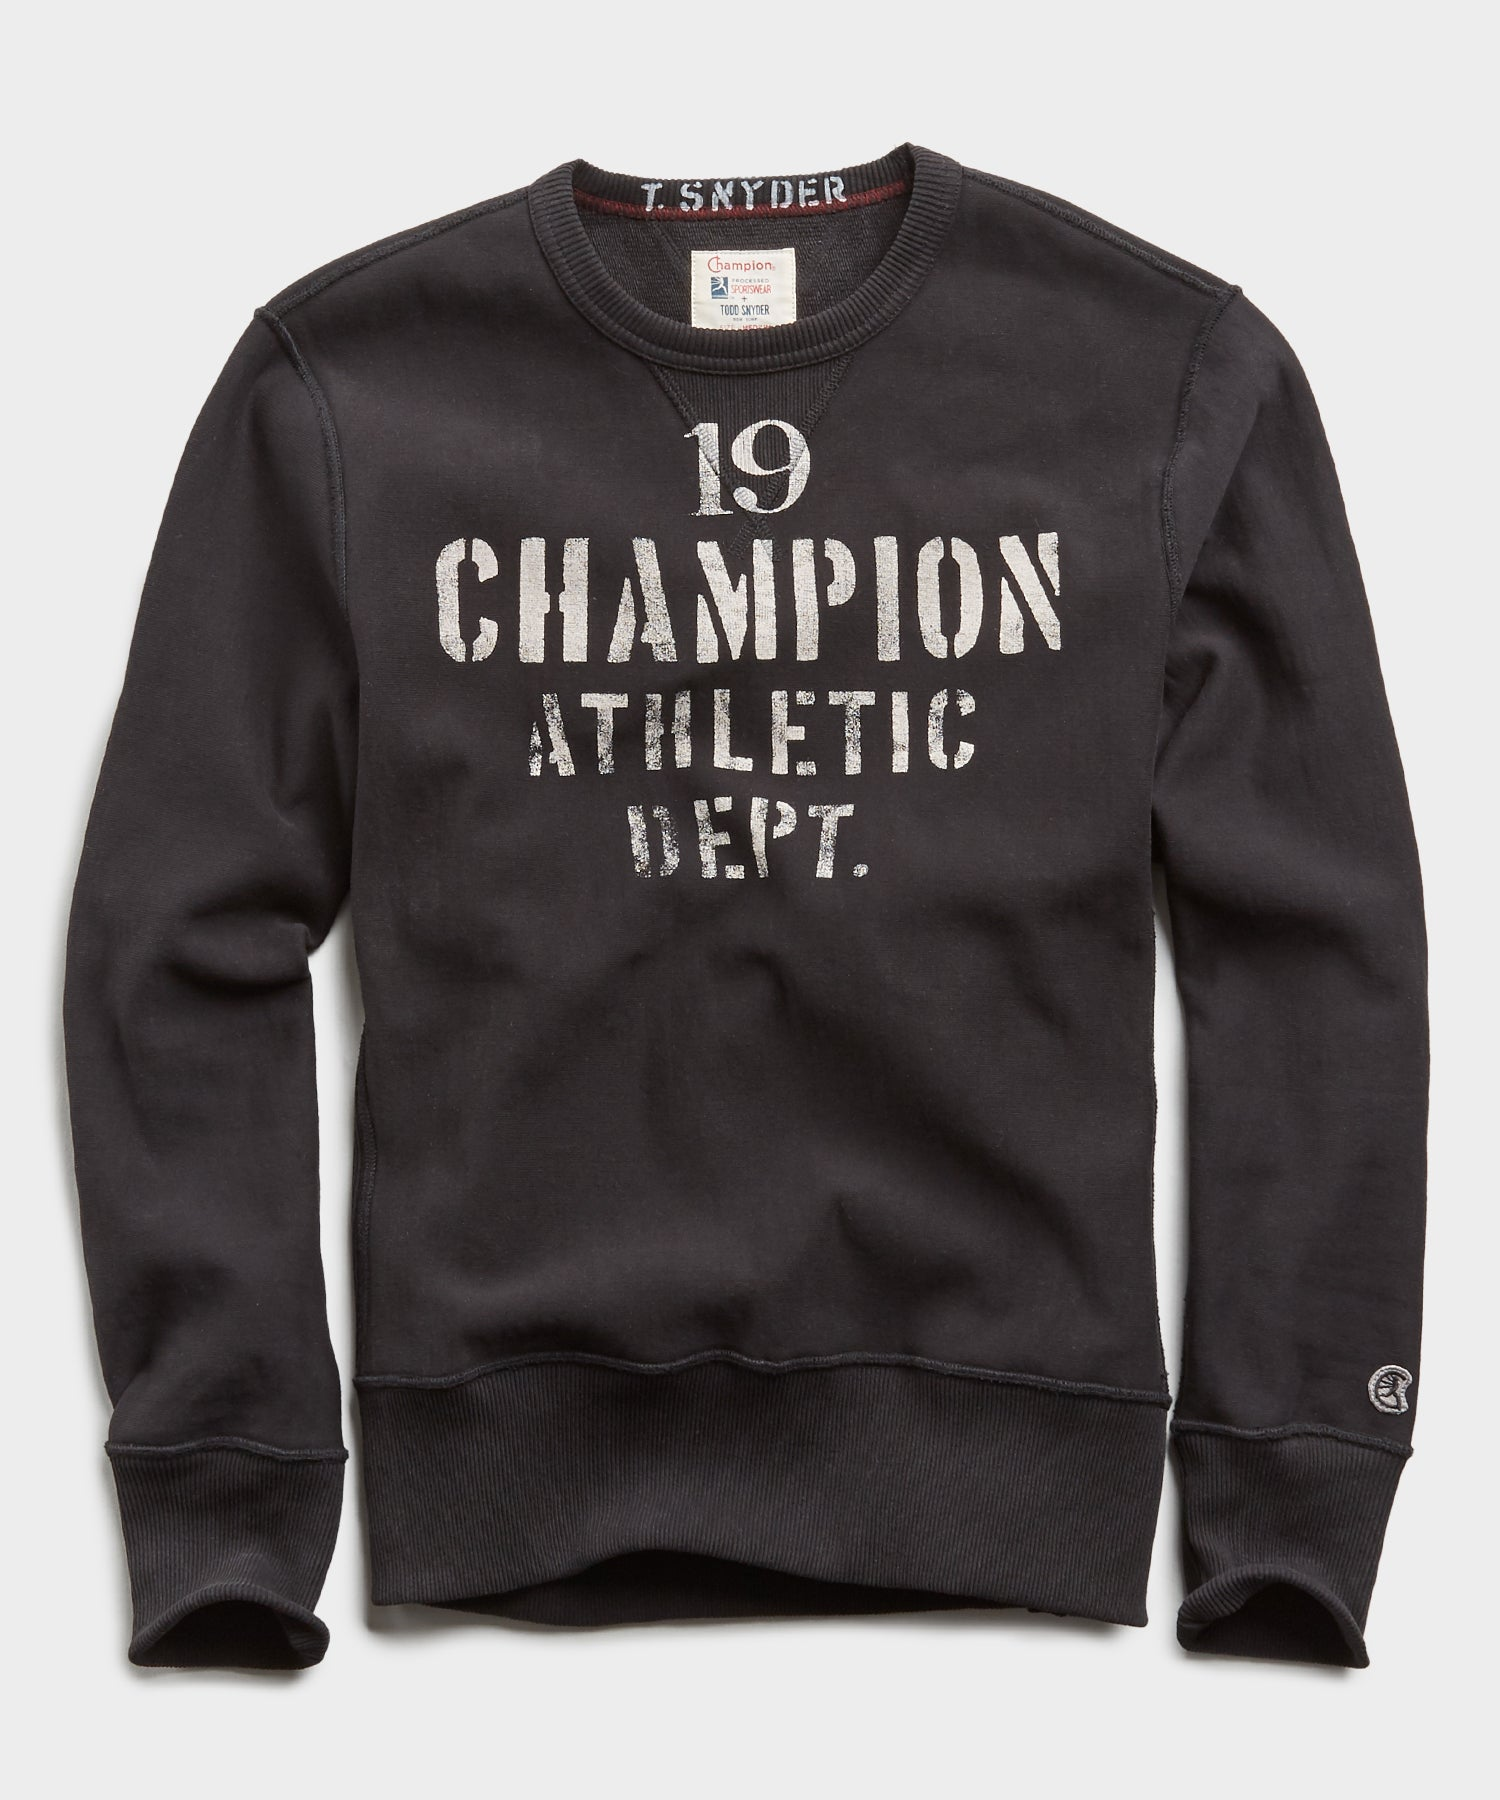 Champion 19 Athletic Dept. Sweatshirt in Blacktop